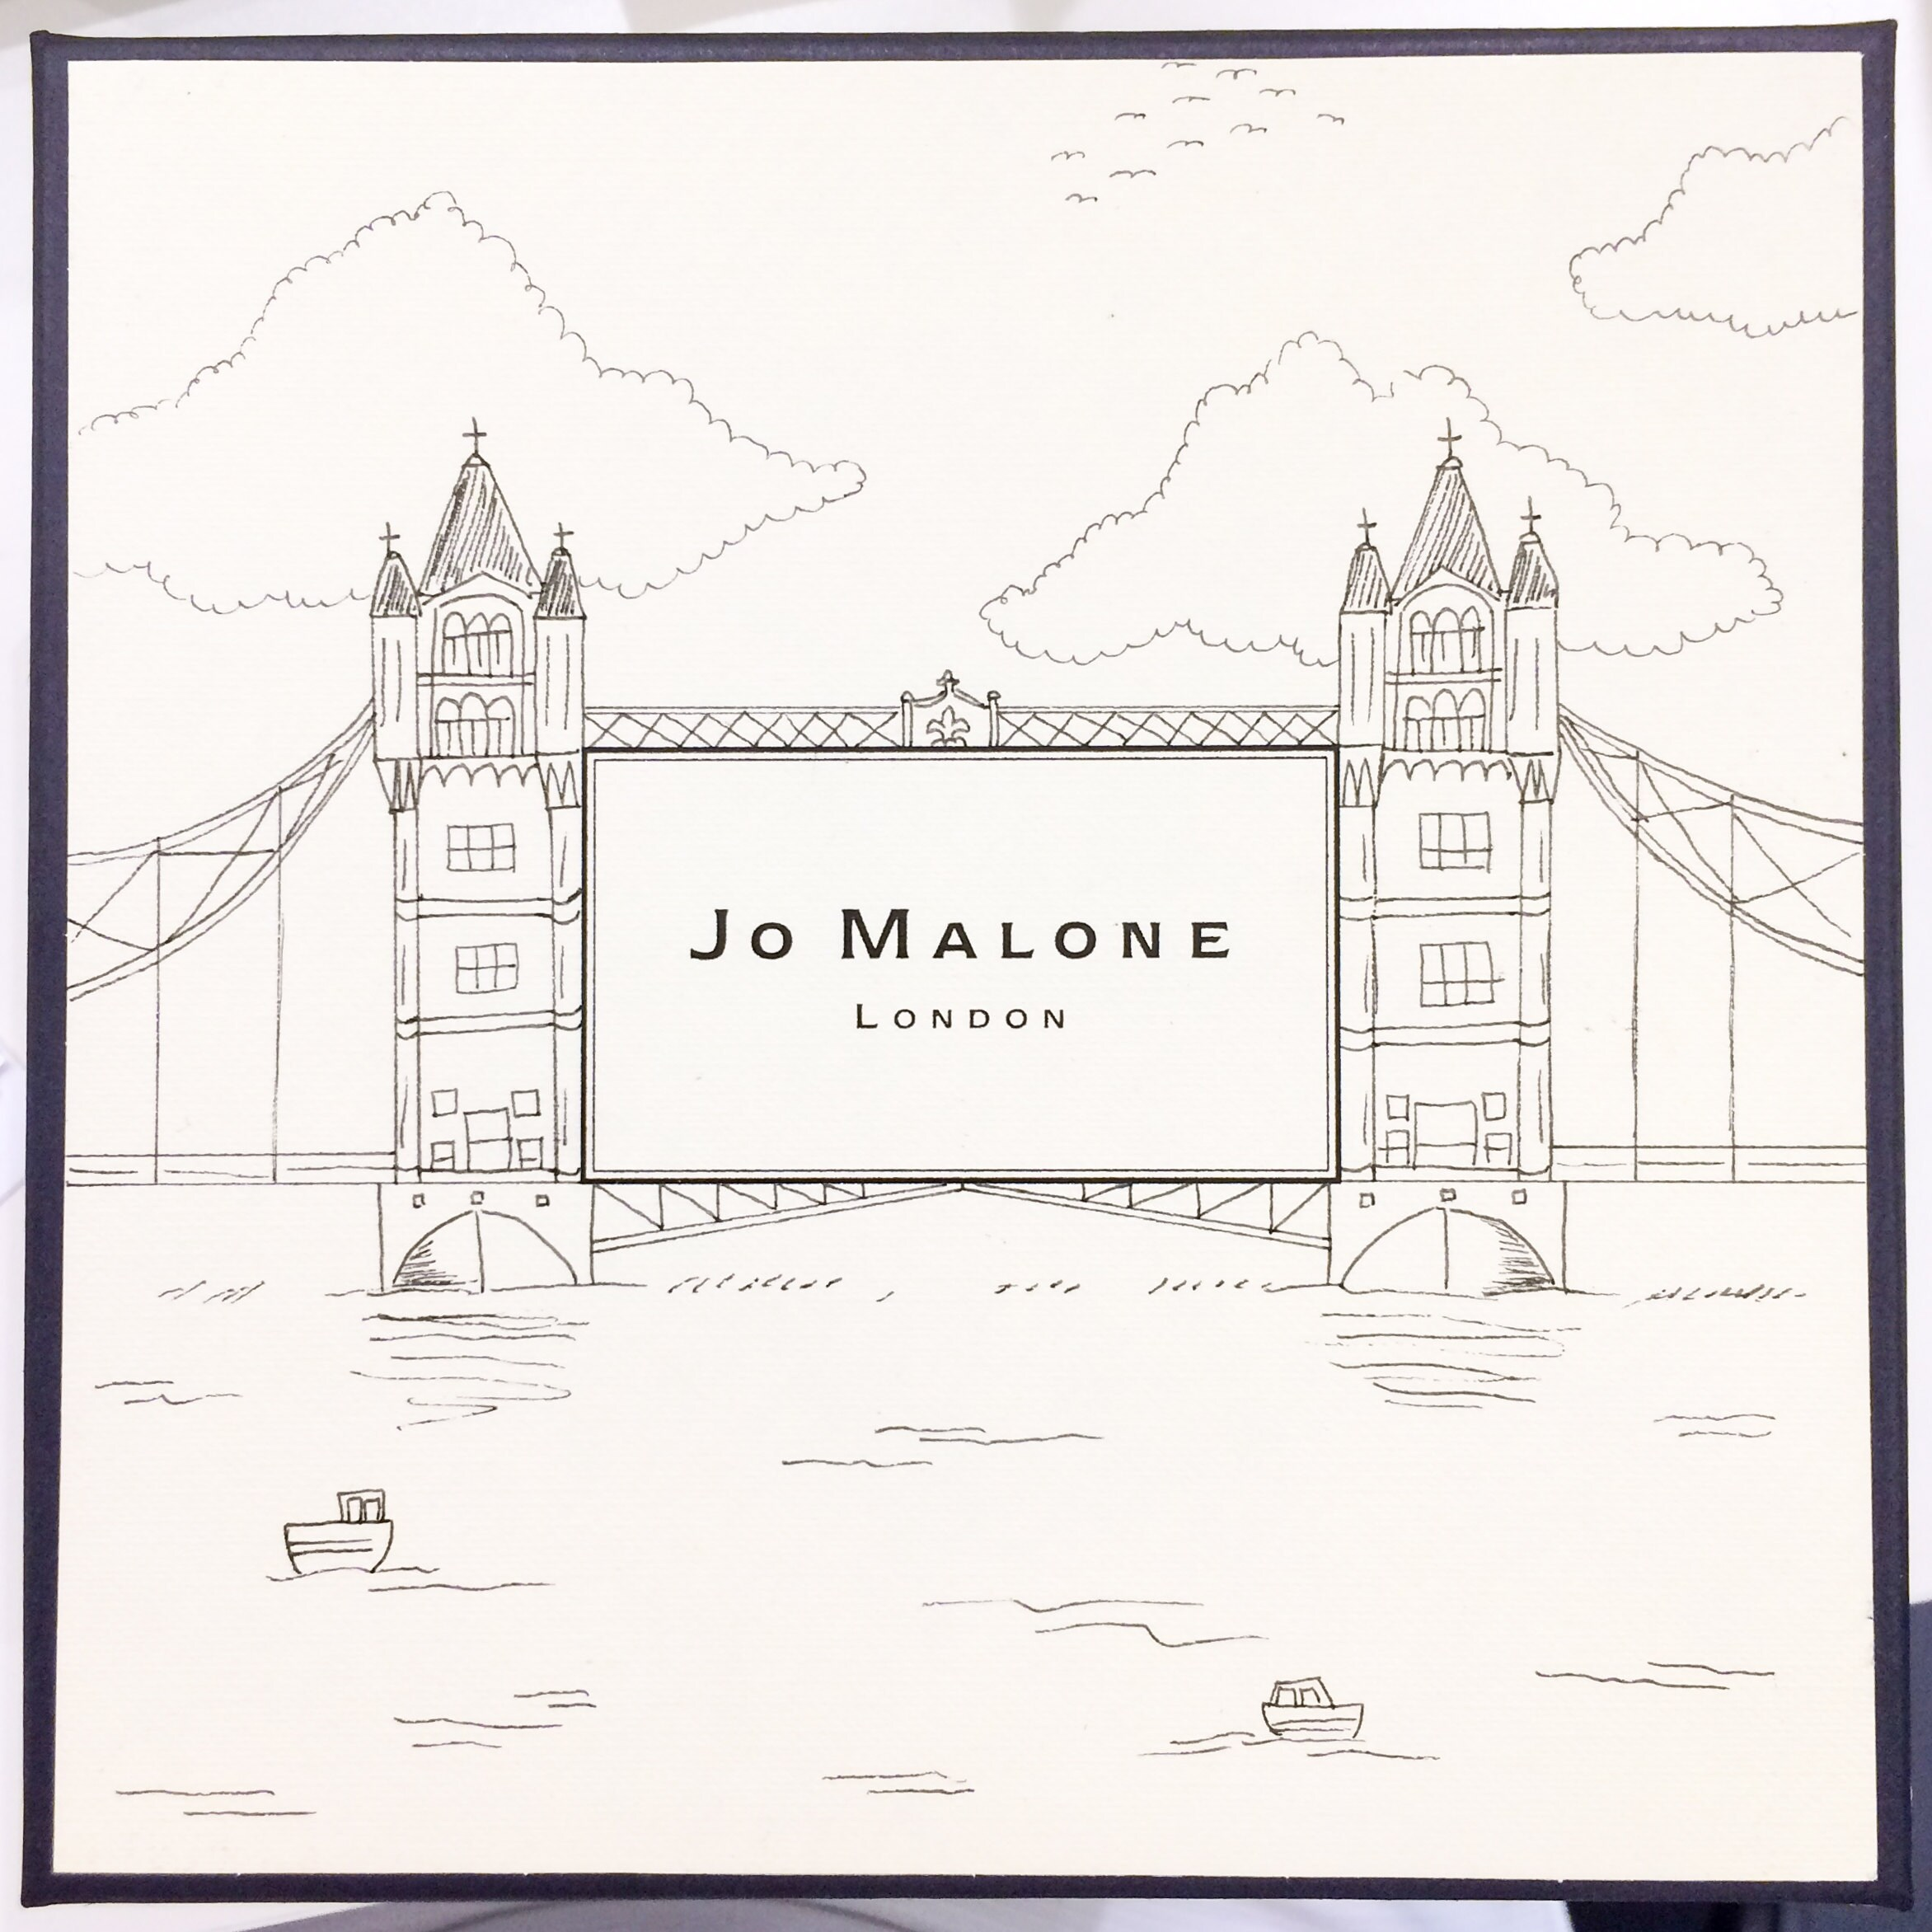 Jo Malone Gift Box Illustrations by Caroline Truong